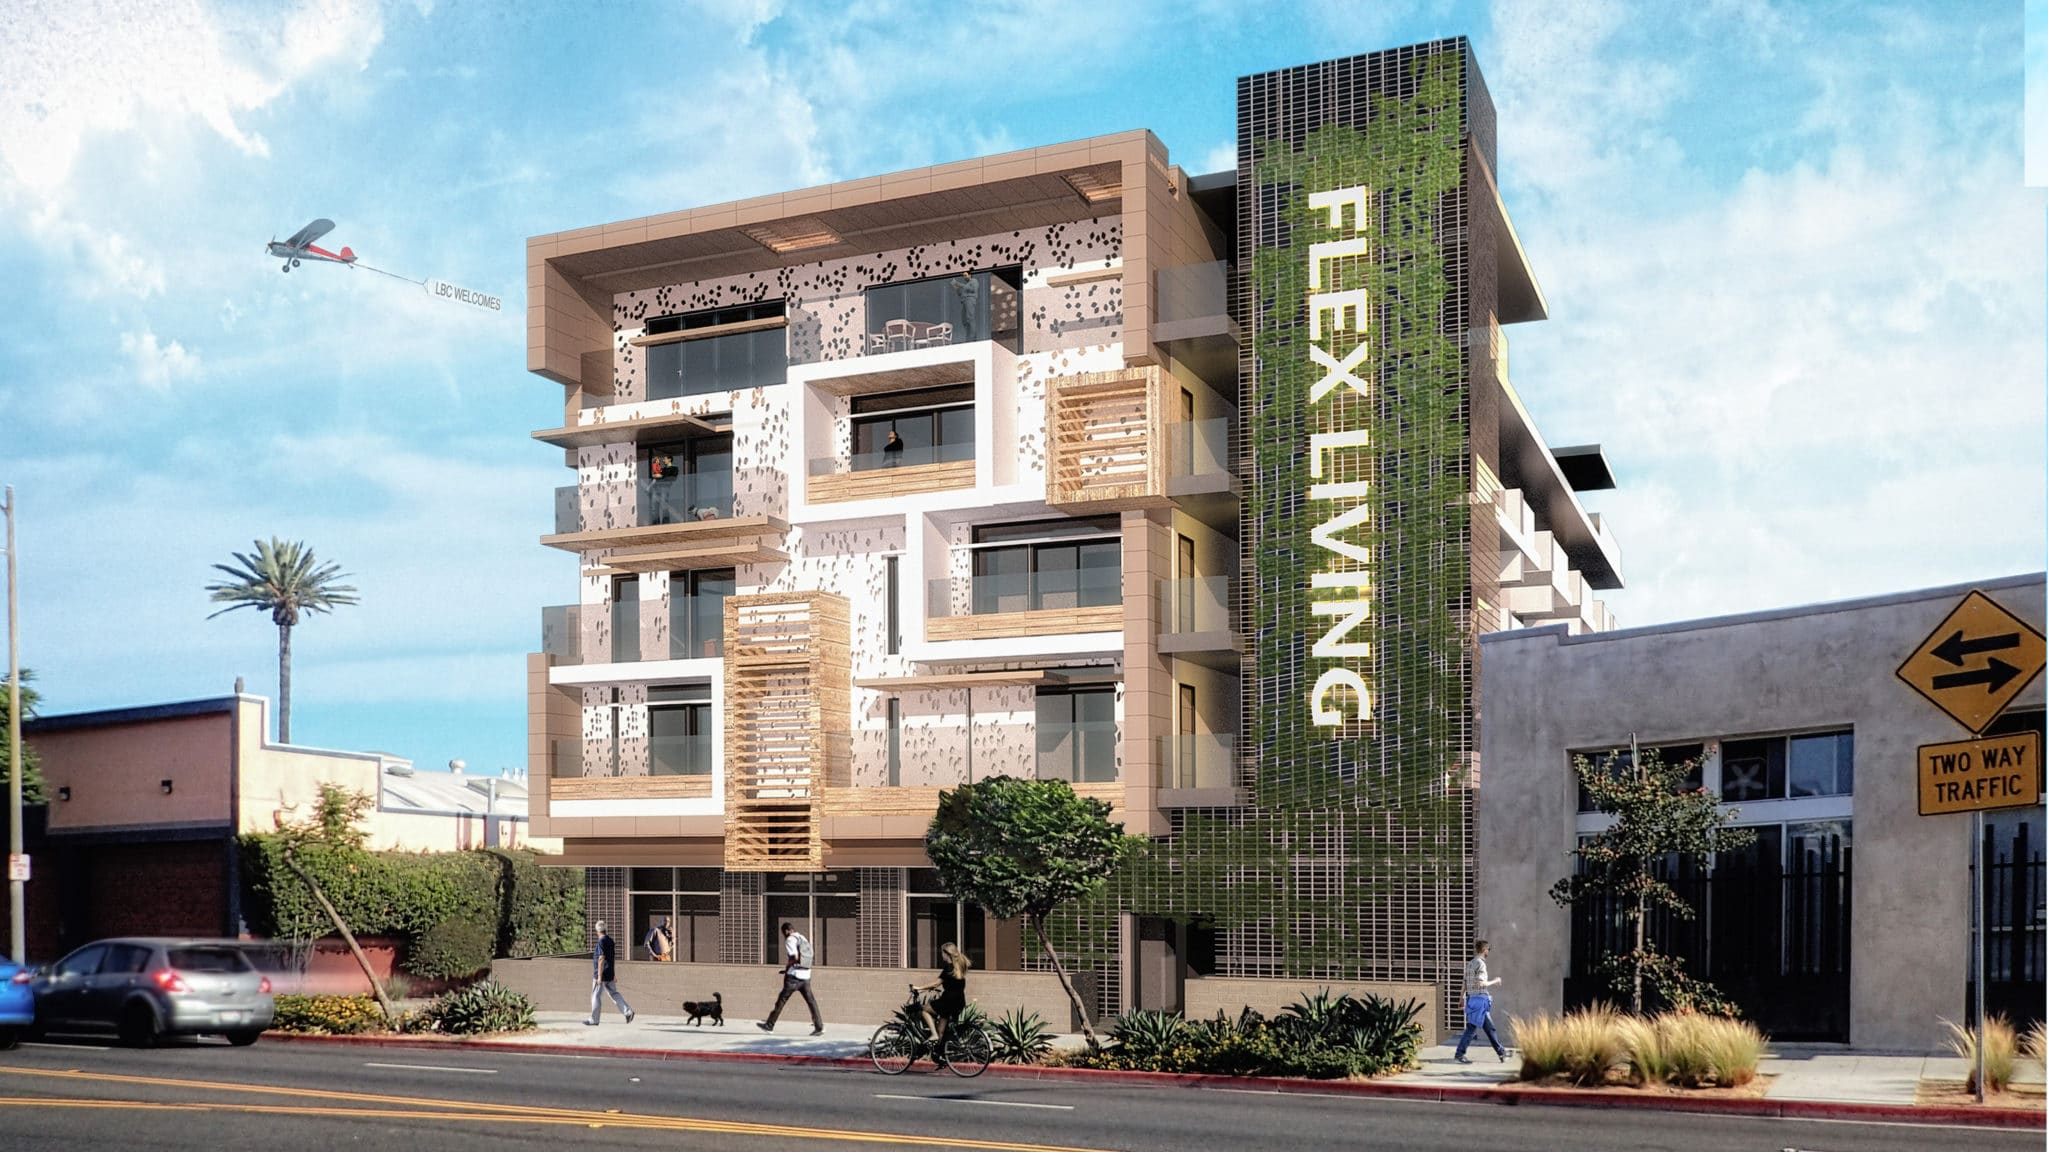 Advanced Design - 7th St Apartment Building - Long Beach - Ultra-Unit Architectural Studio